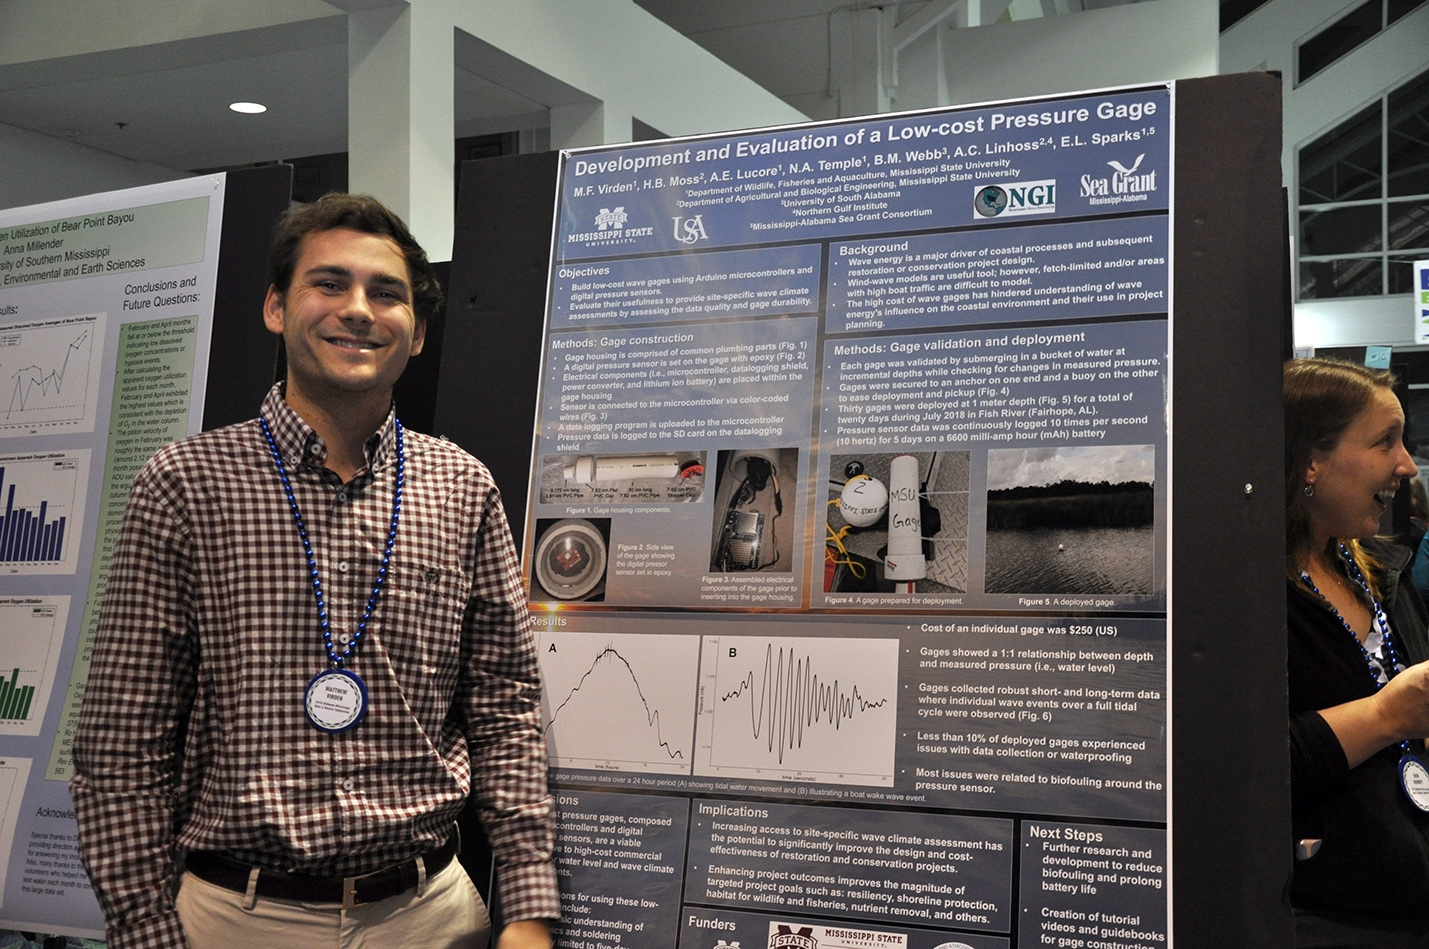 Student Matthew Virden of Mississippi State University presents his poster on a Sea Grant-supported effort to develop a low-cost pressure gage.